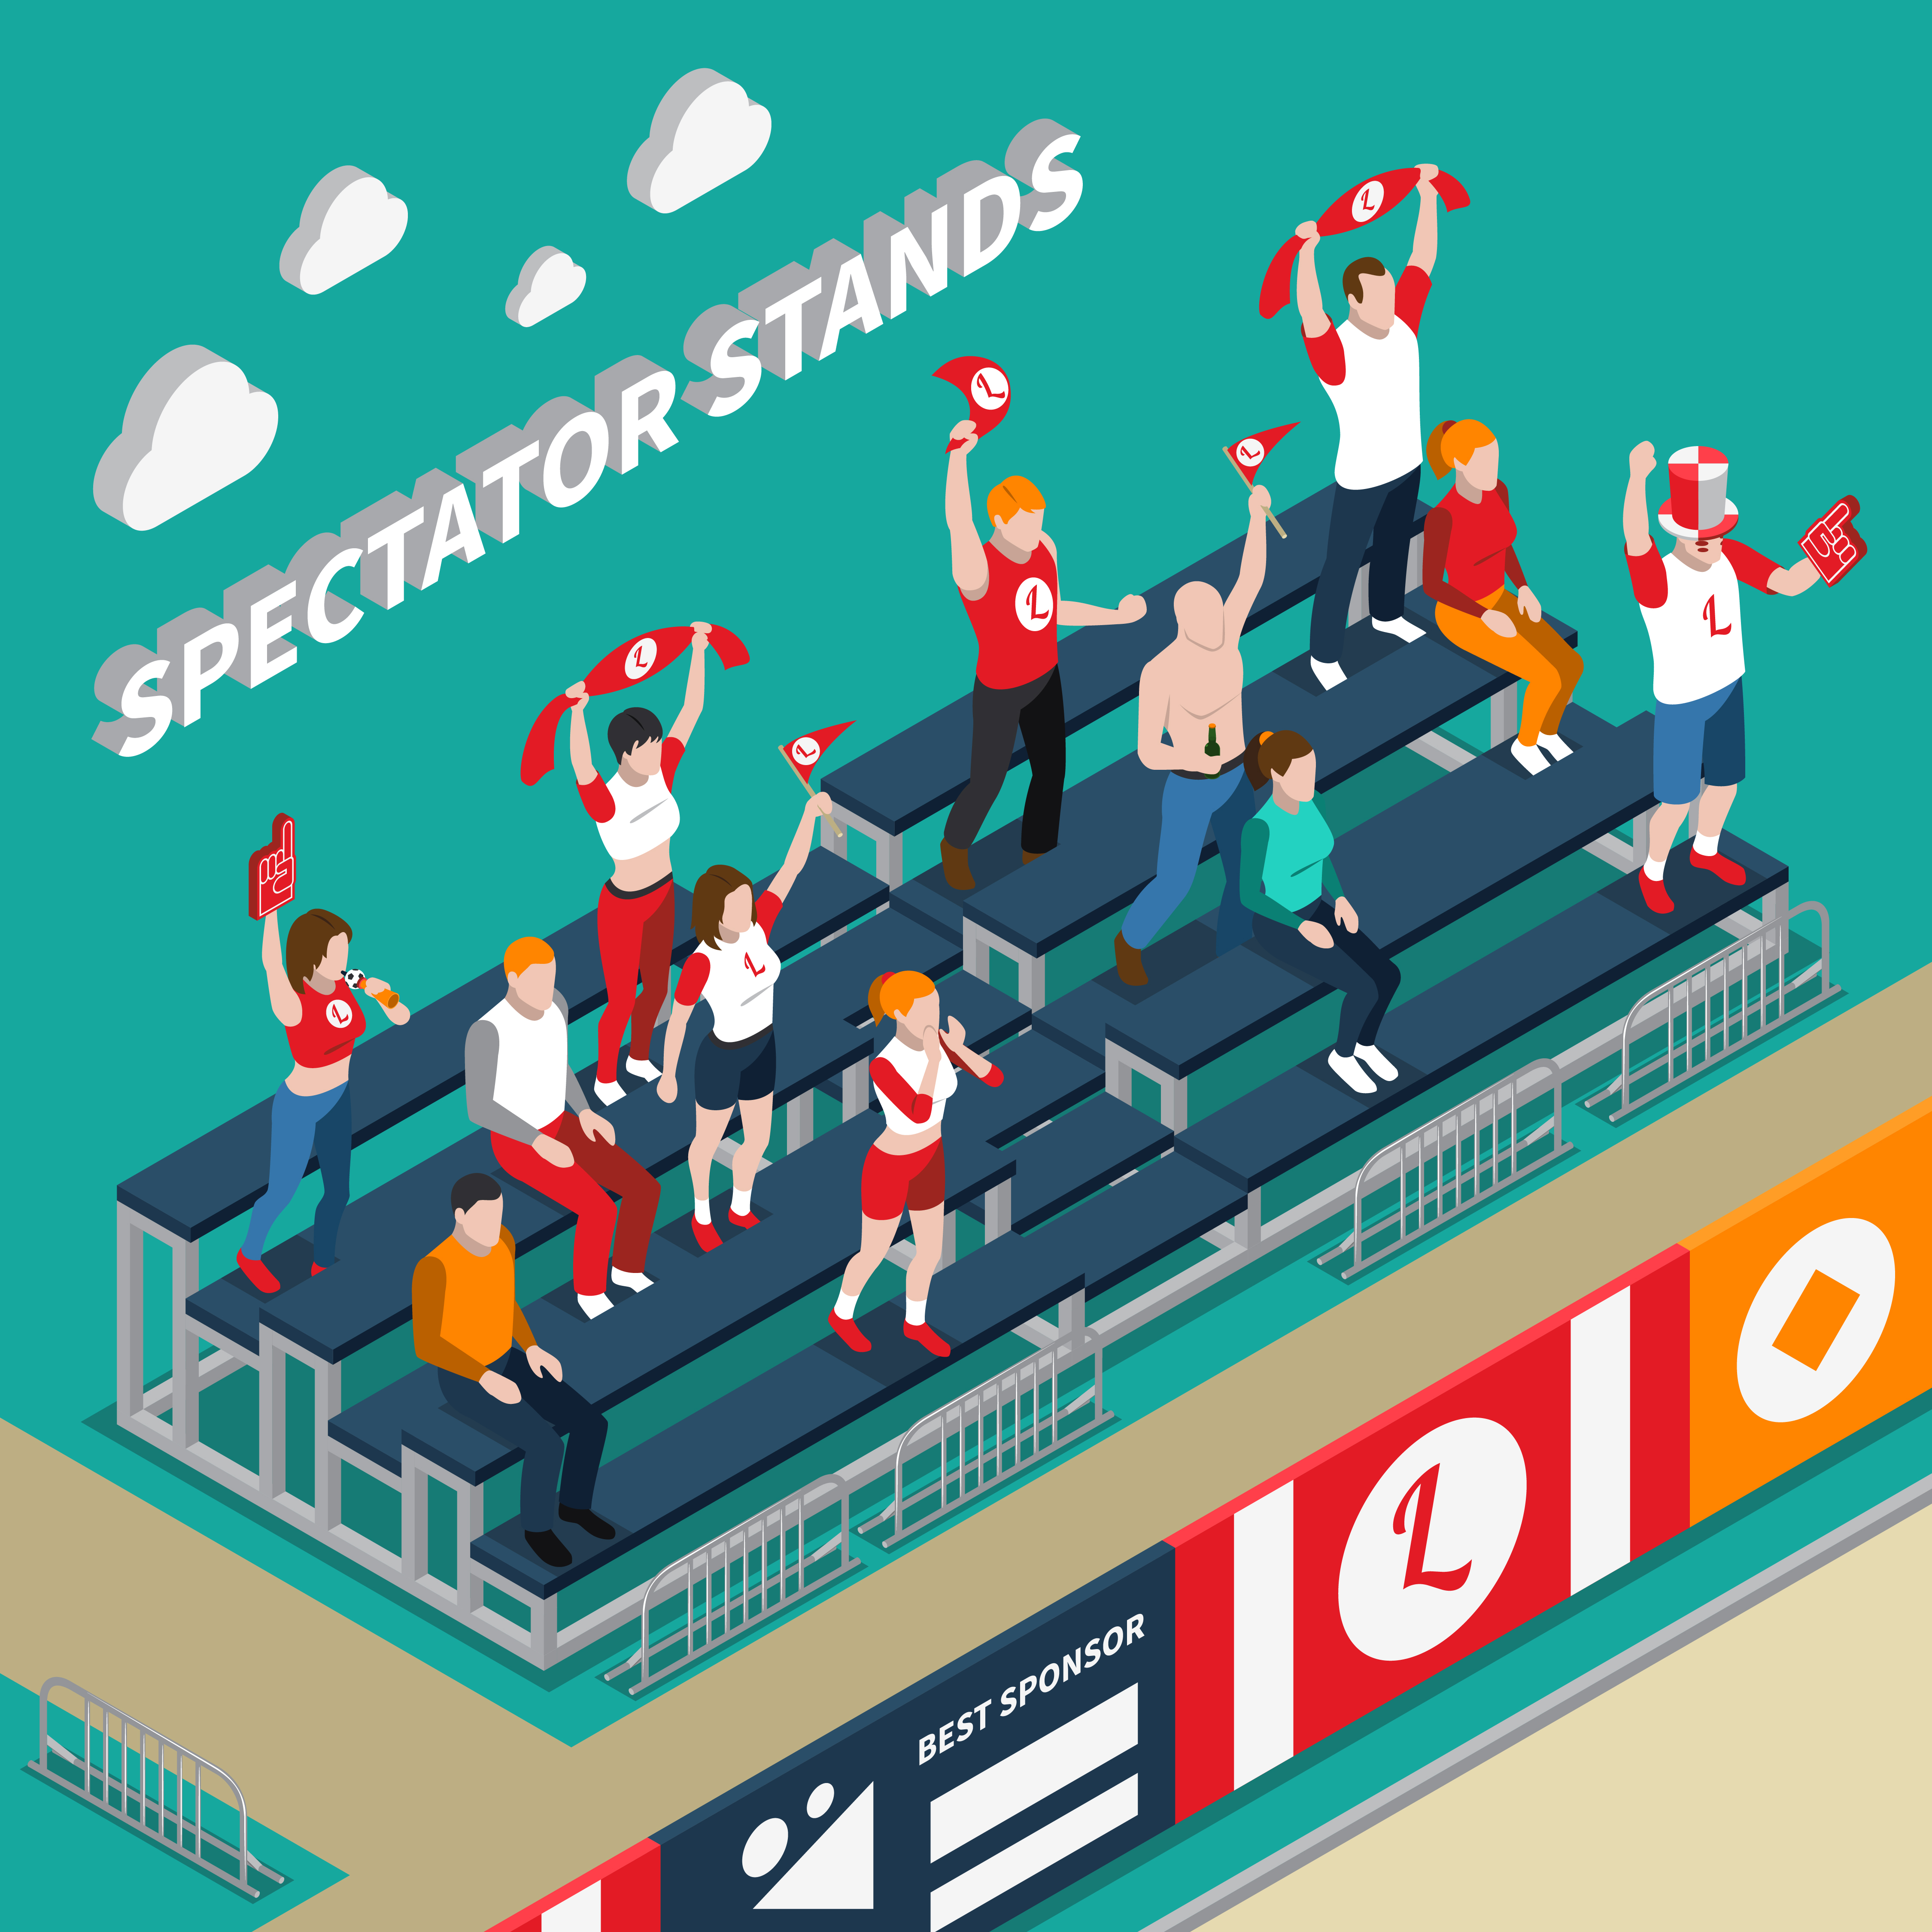 Cheering Crowd in Soccer Stadium Clipart Image